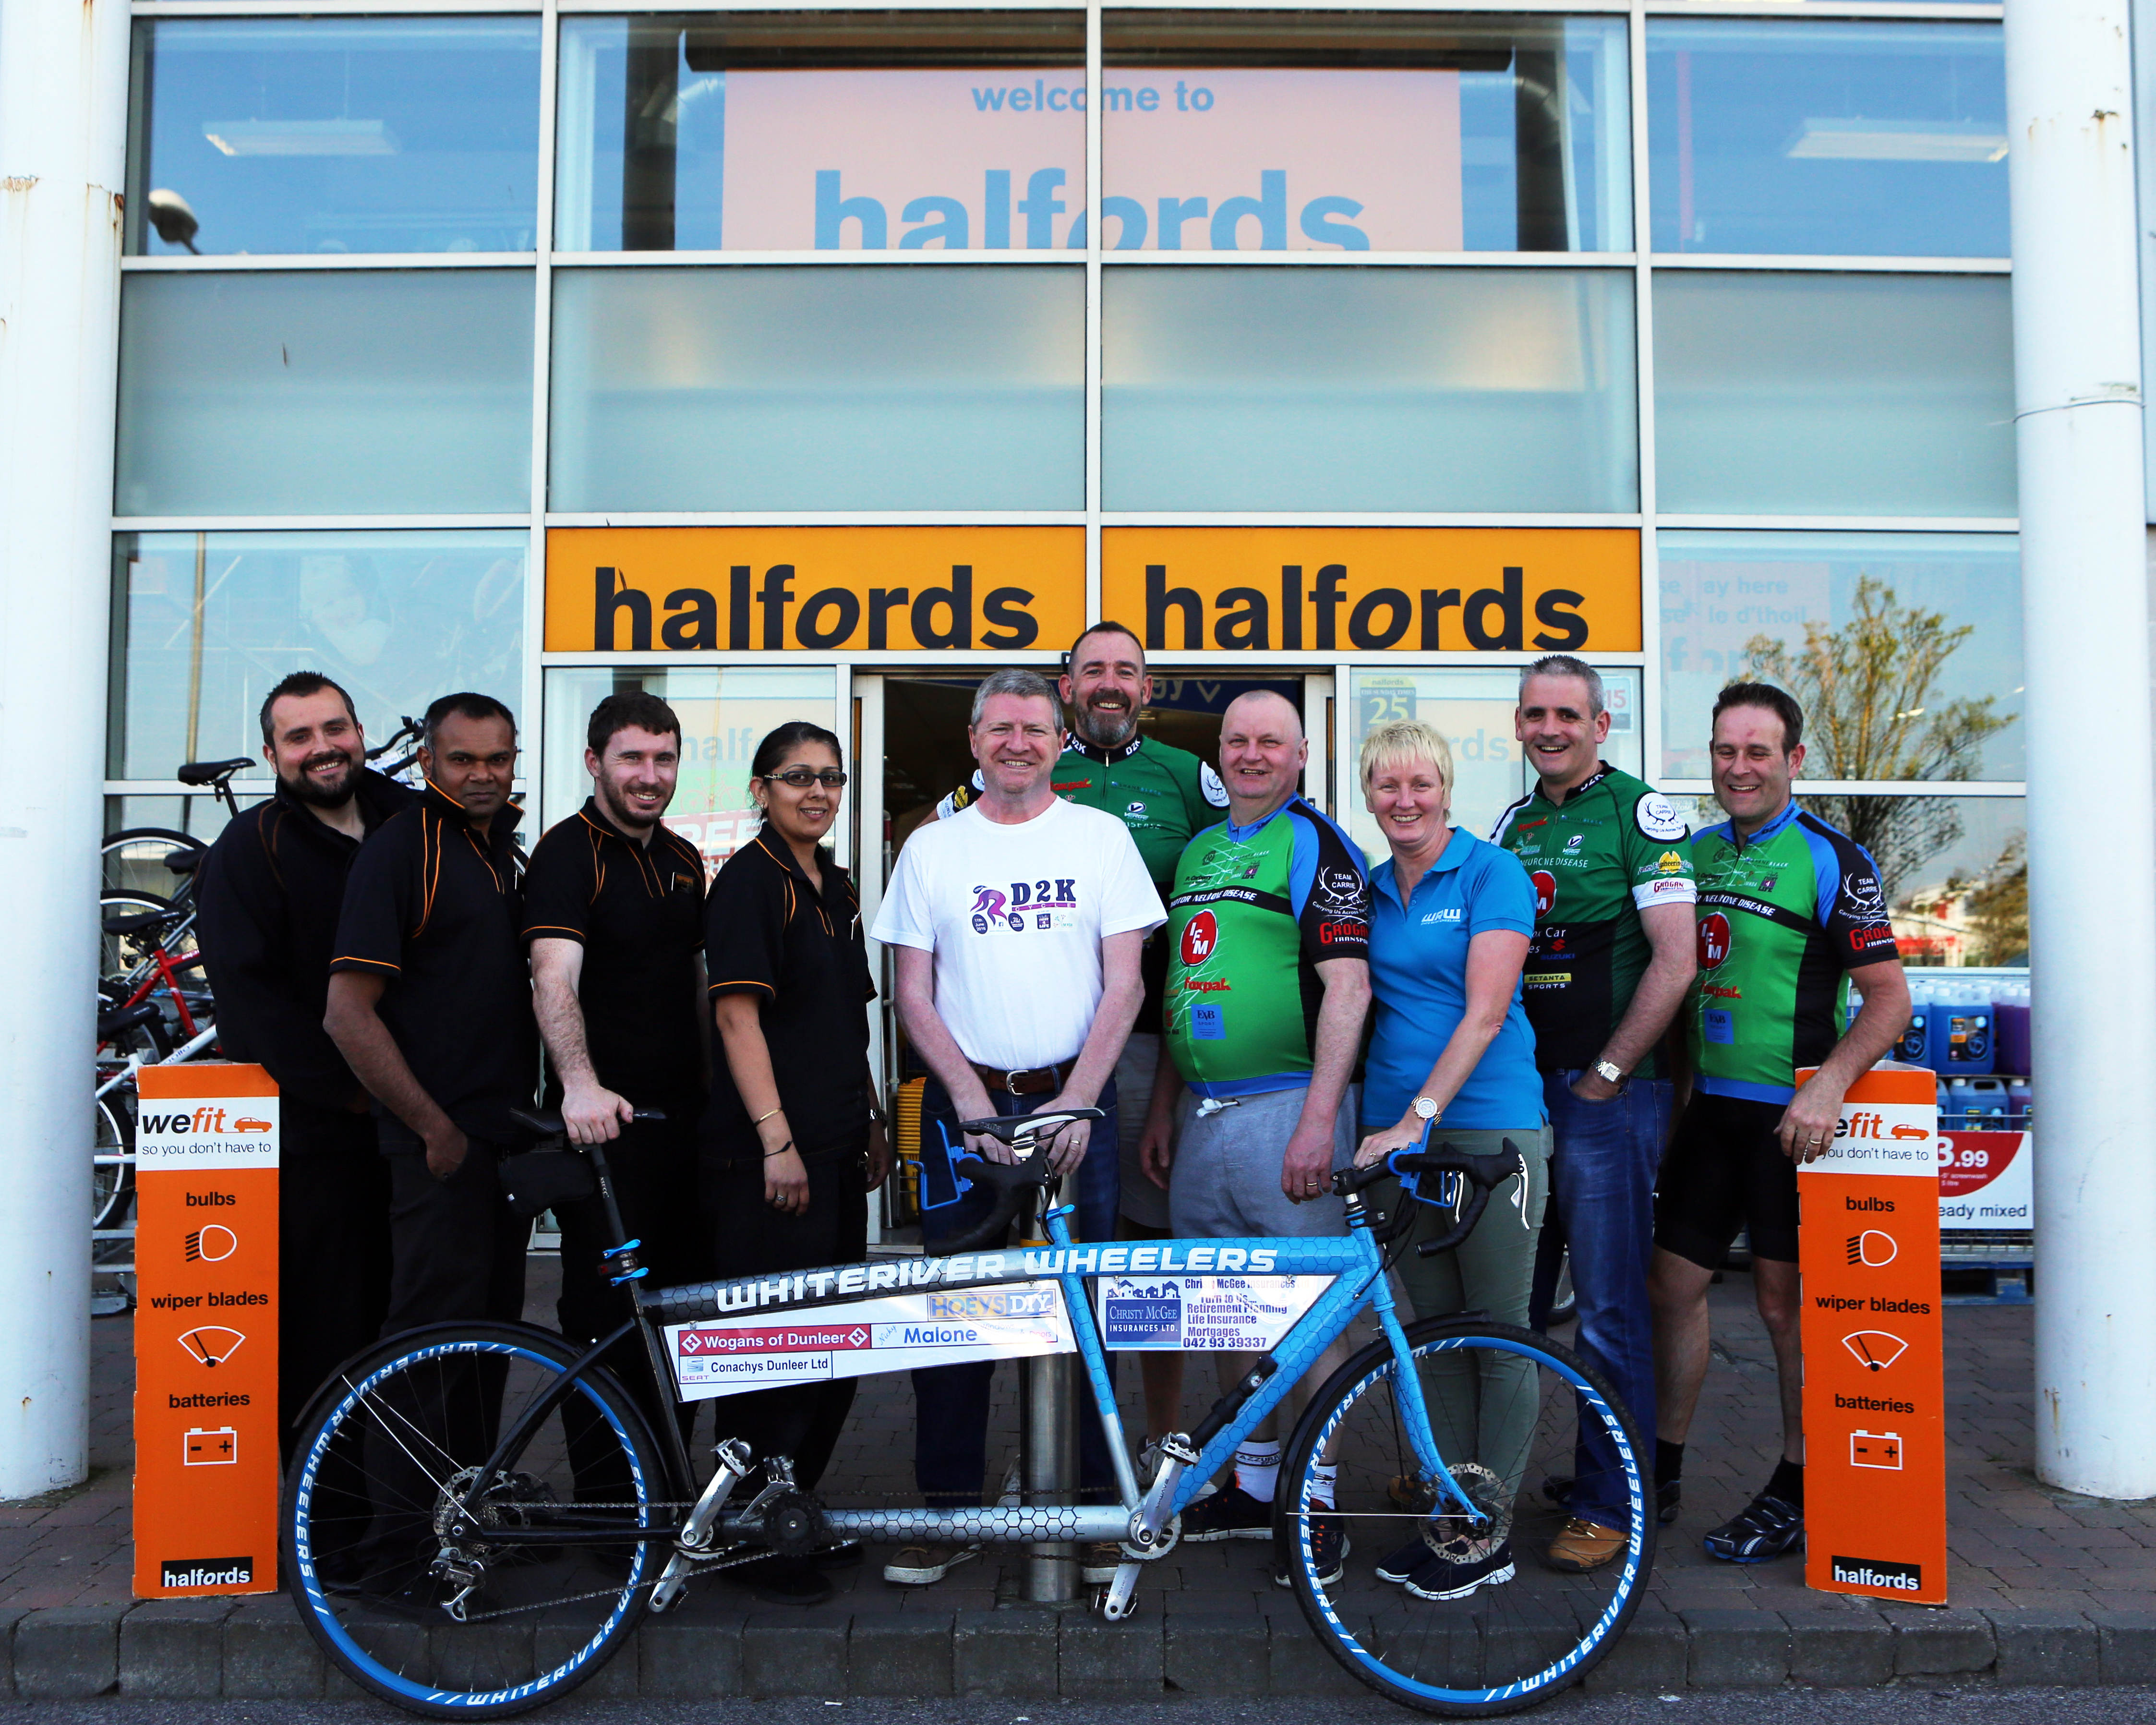 Phil Barr, Taren Nullatamby, Padraig O'Rourke and Baljit Murphy from Halfords, Paul Lannon, Fergus Grimes, Eamon Fogarty, Emer Fogarty, Damien Briody and Paddy Holcroft from White River Wheelers.